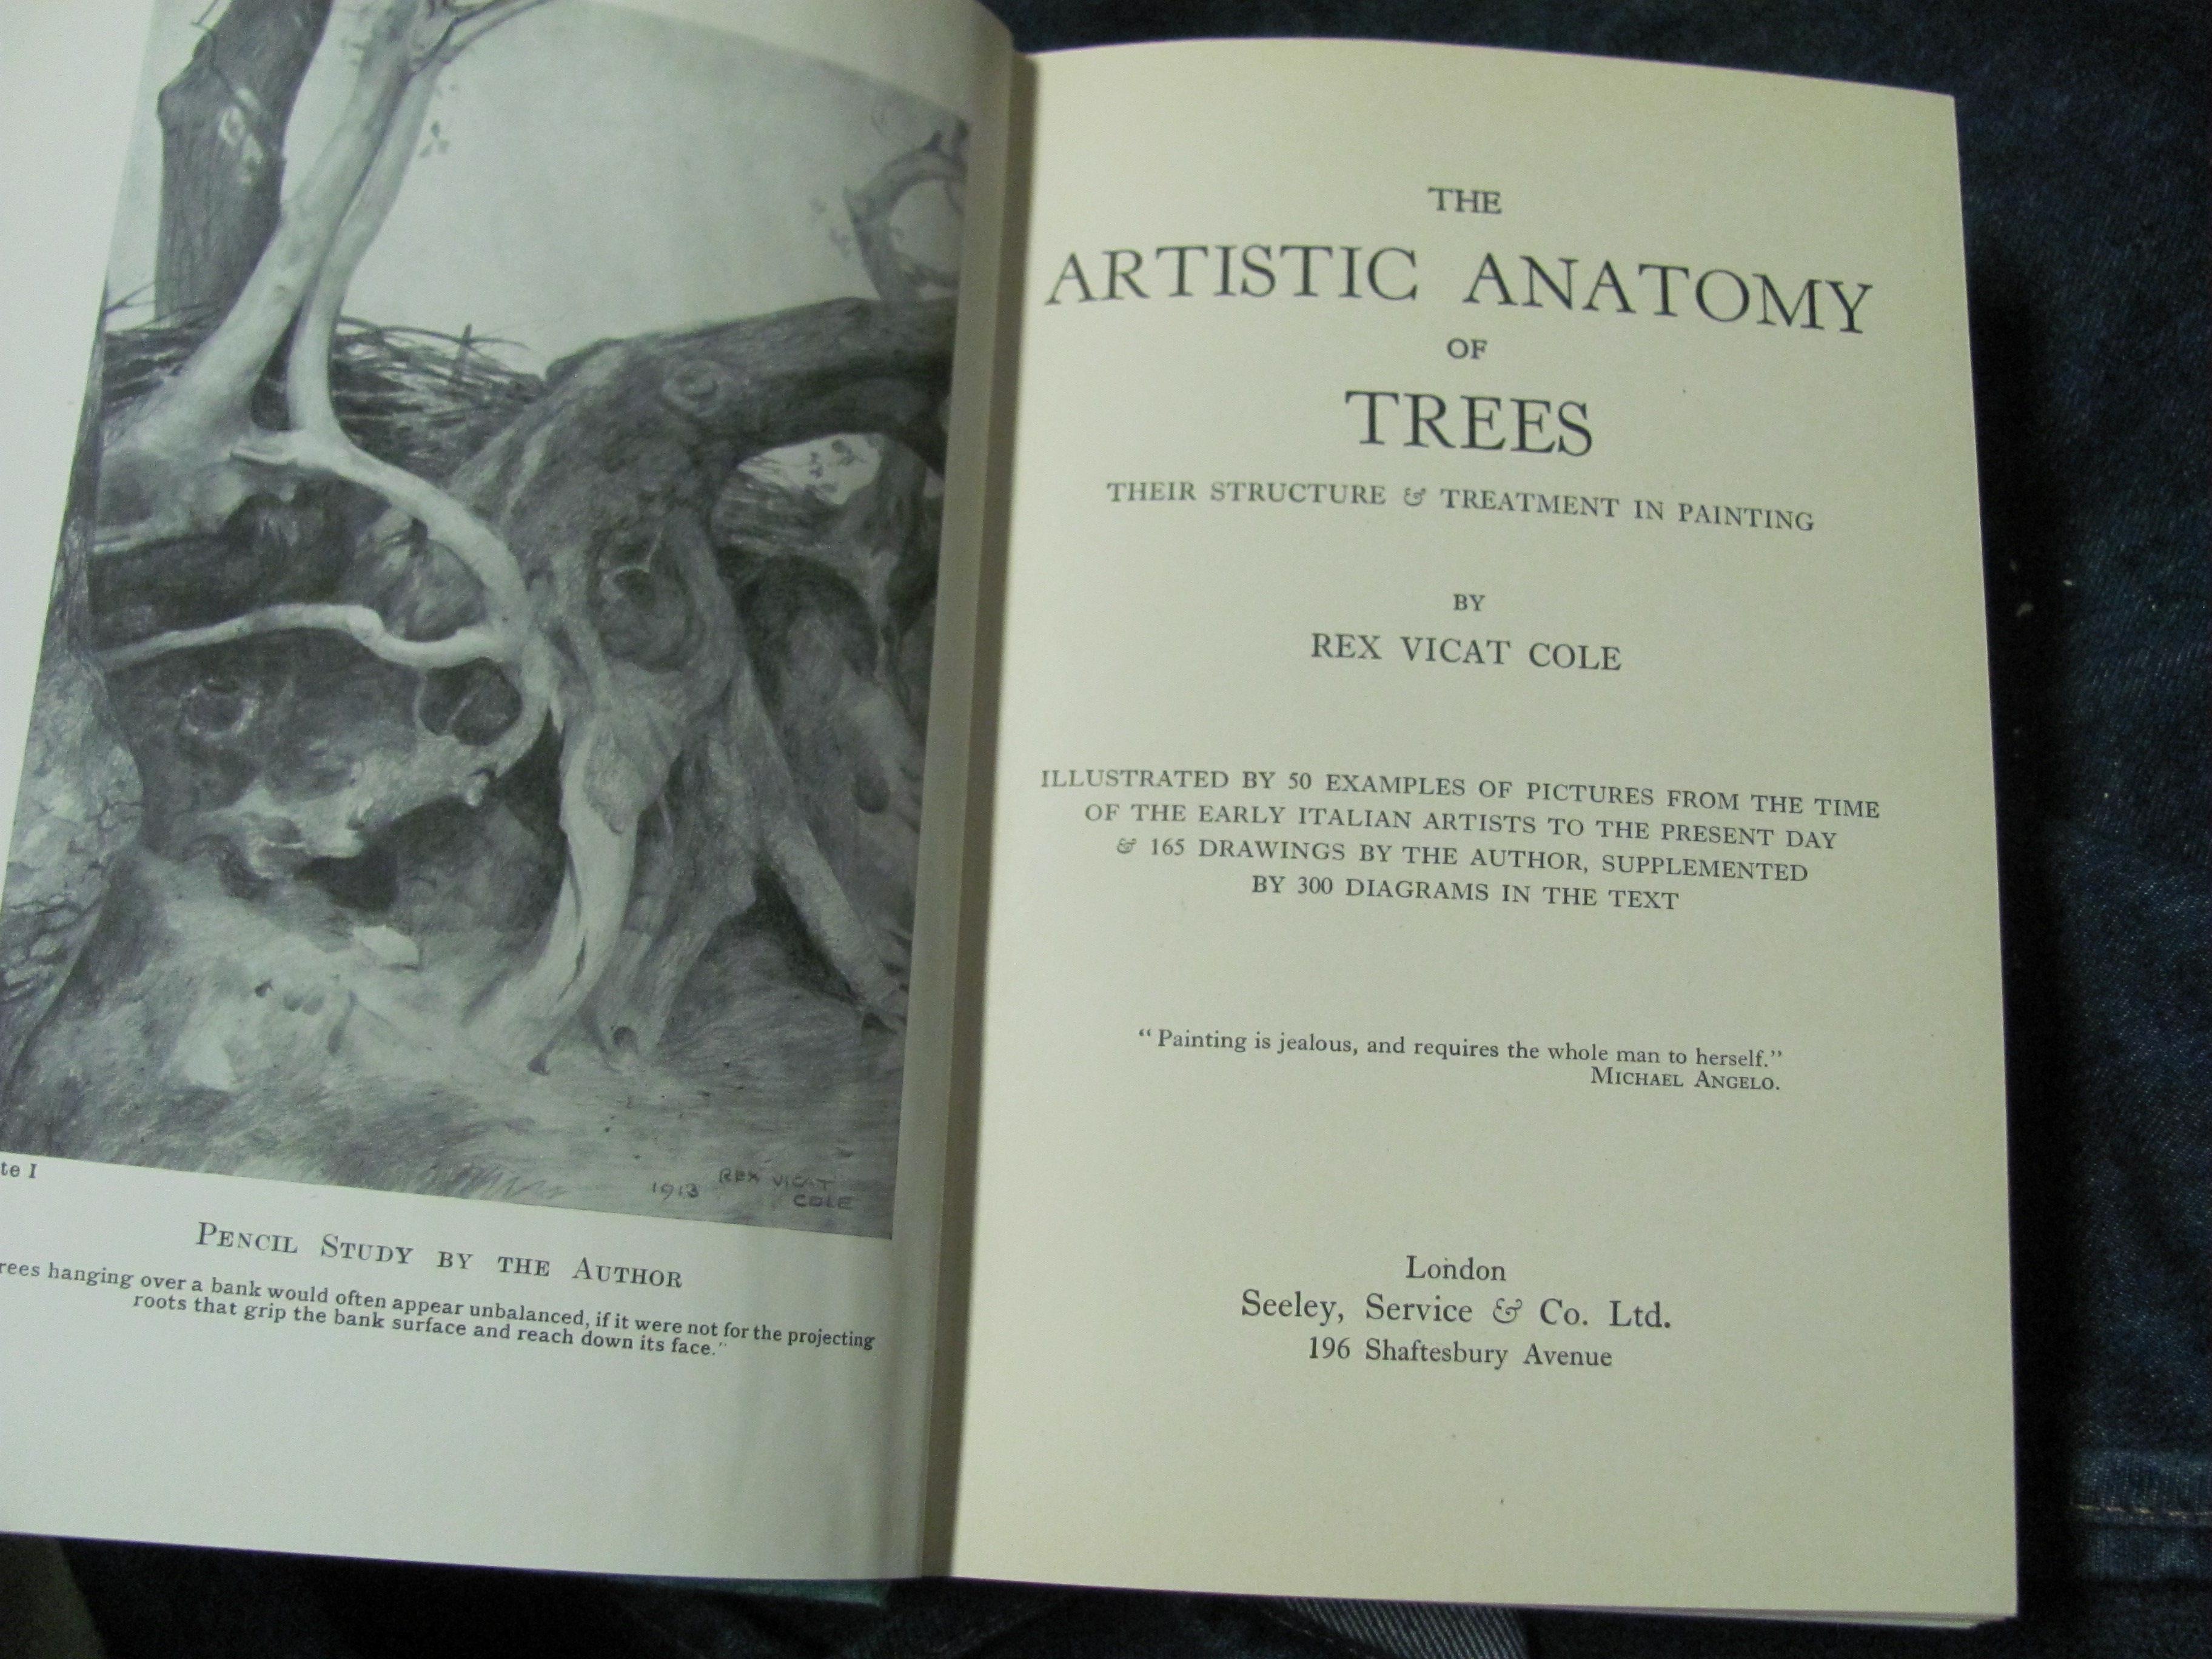 The Artistic Anatomy of Trees by Rex Vicat Cole – From Victory Road